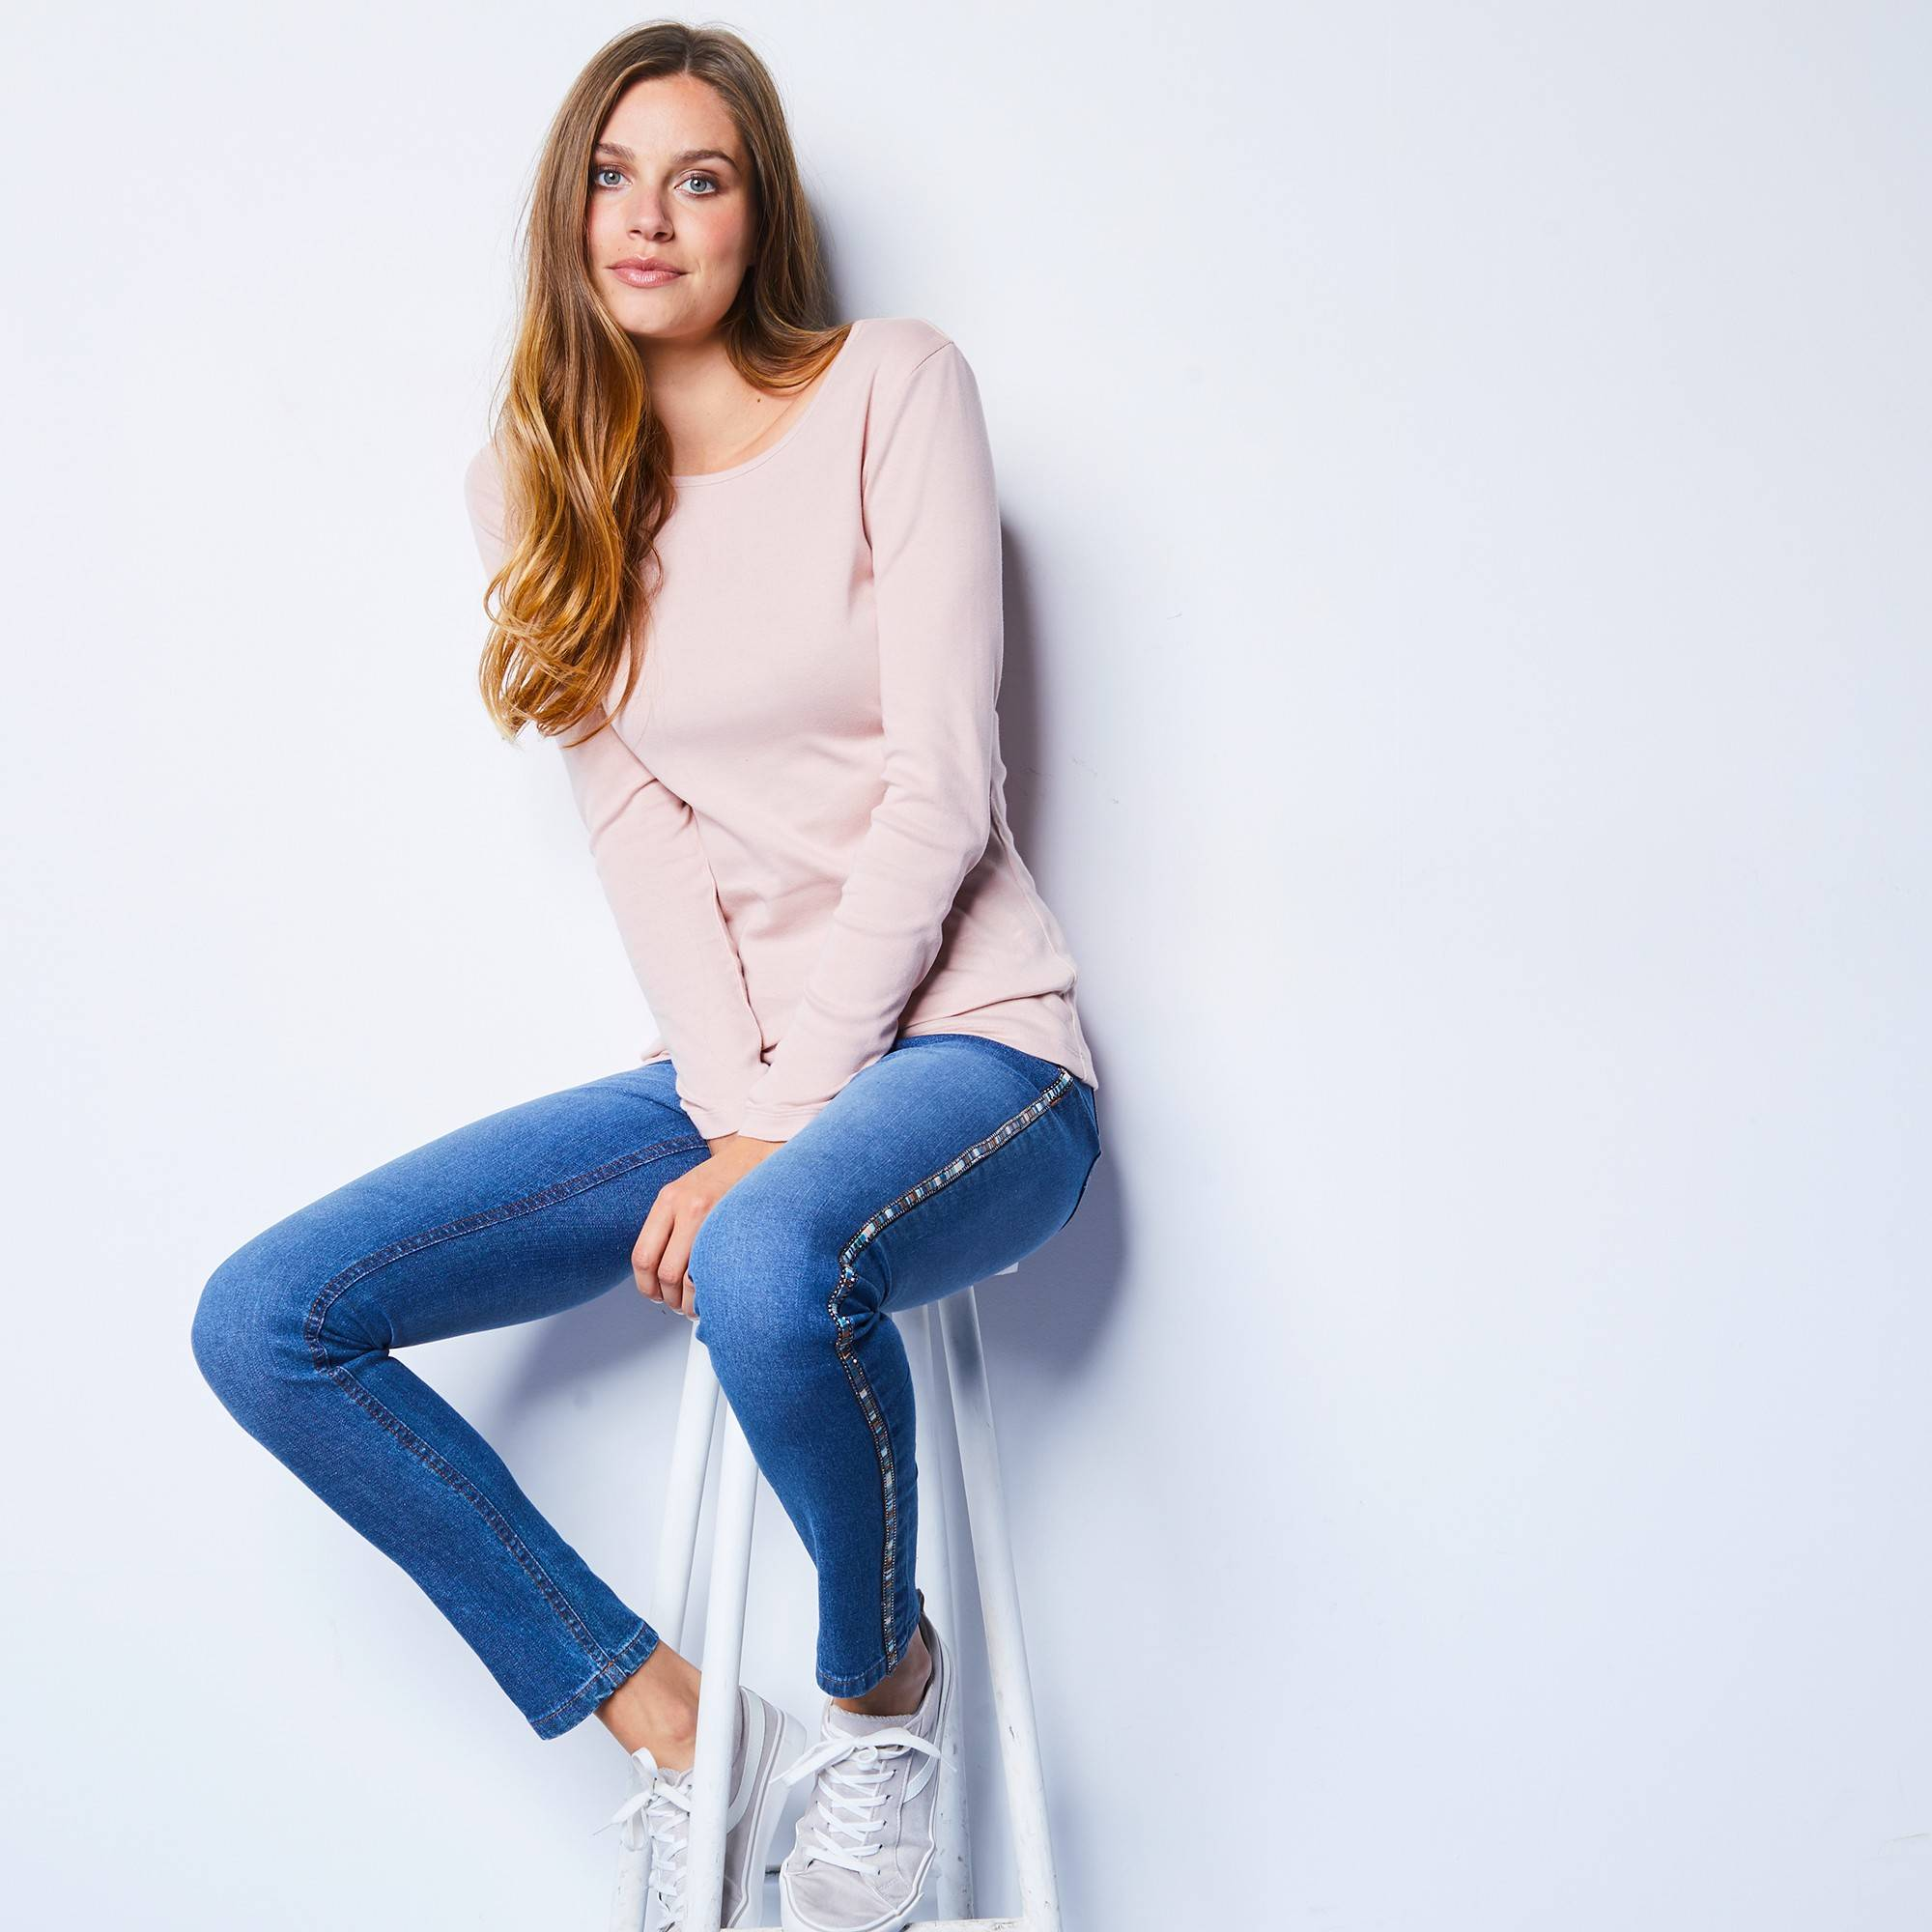 Tee-shirt manches longues - rose poudré - Rose - Taille : 34,36 - Blancheporte